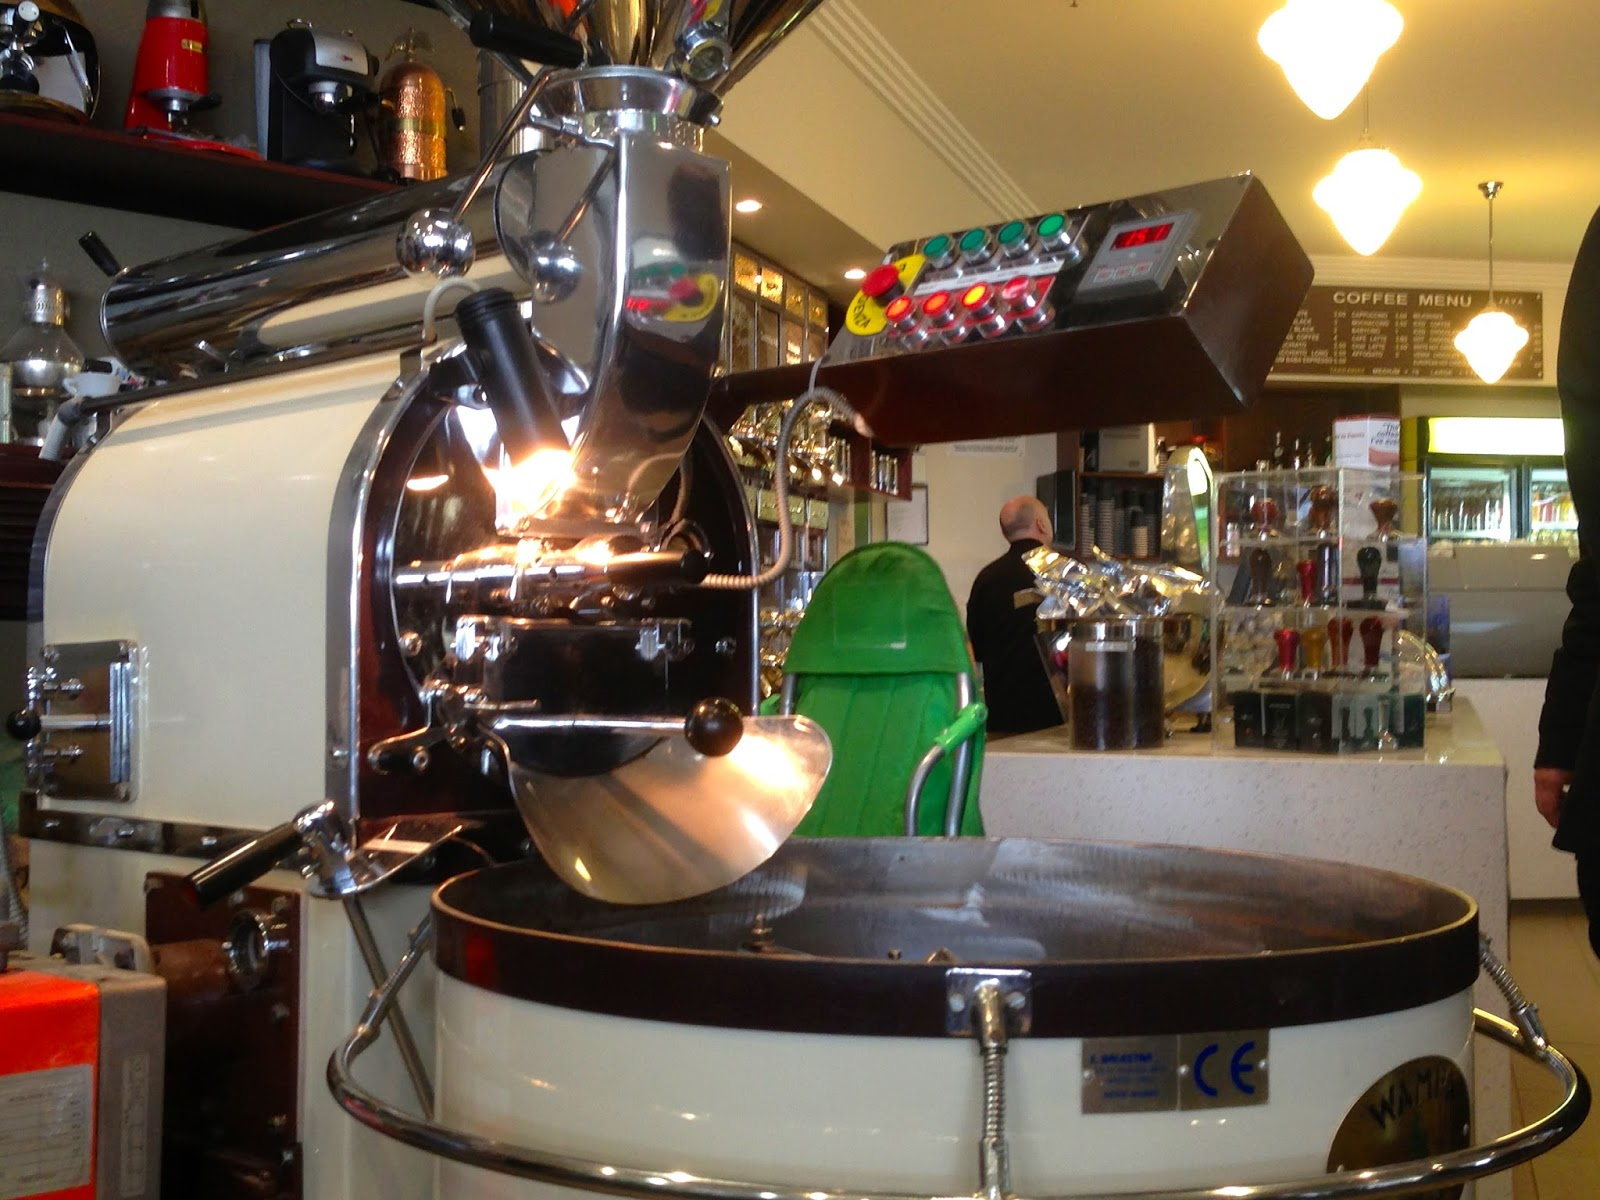 Java Lifestyle Coffee and Tea - Campbelltown Food Trail